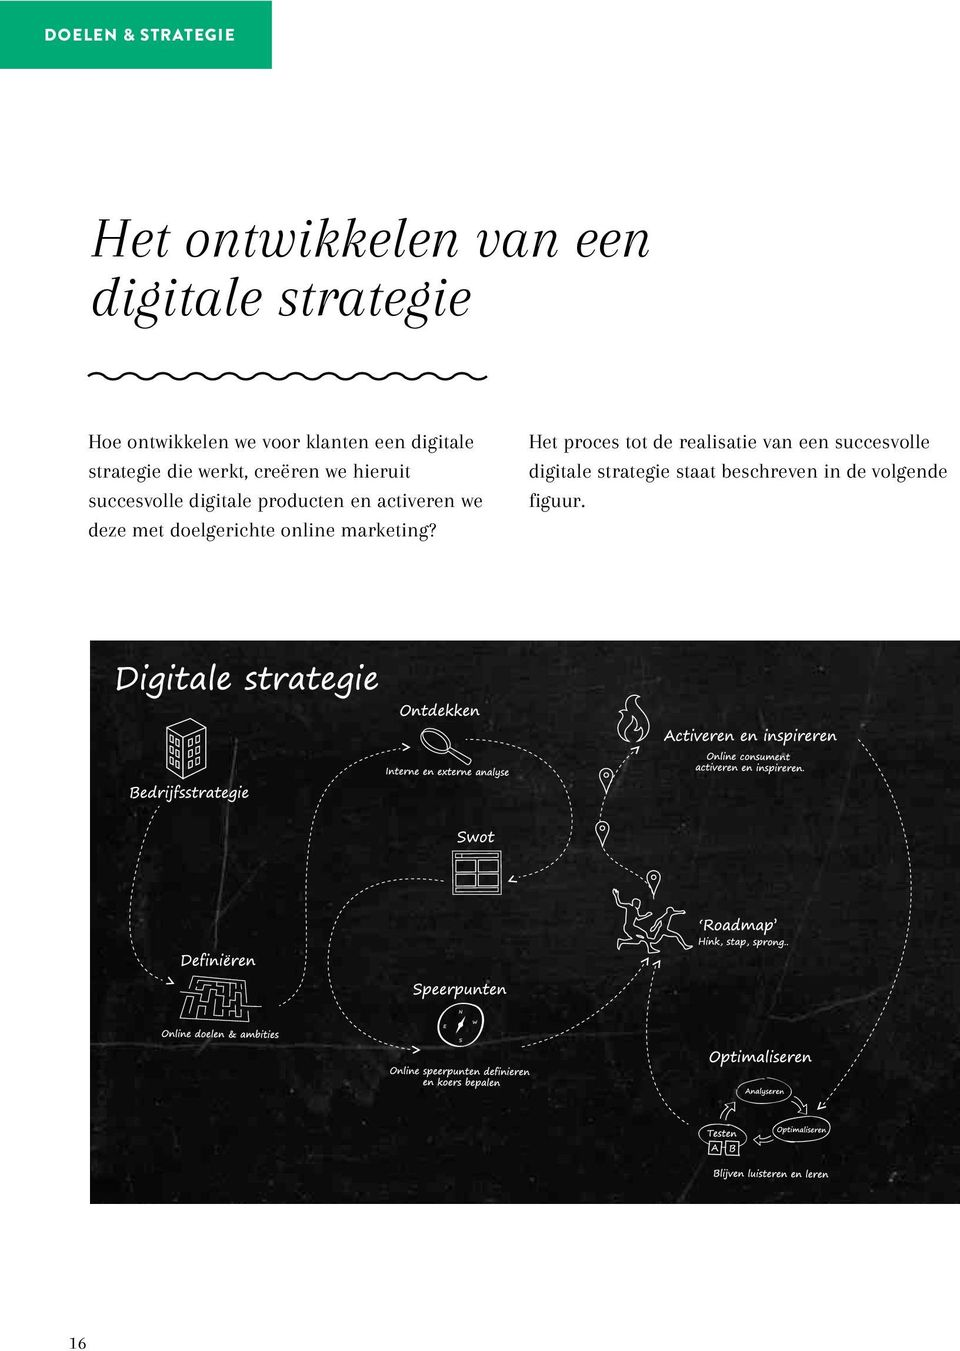 producten en activeren we deze met doelgerichte online marketing?